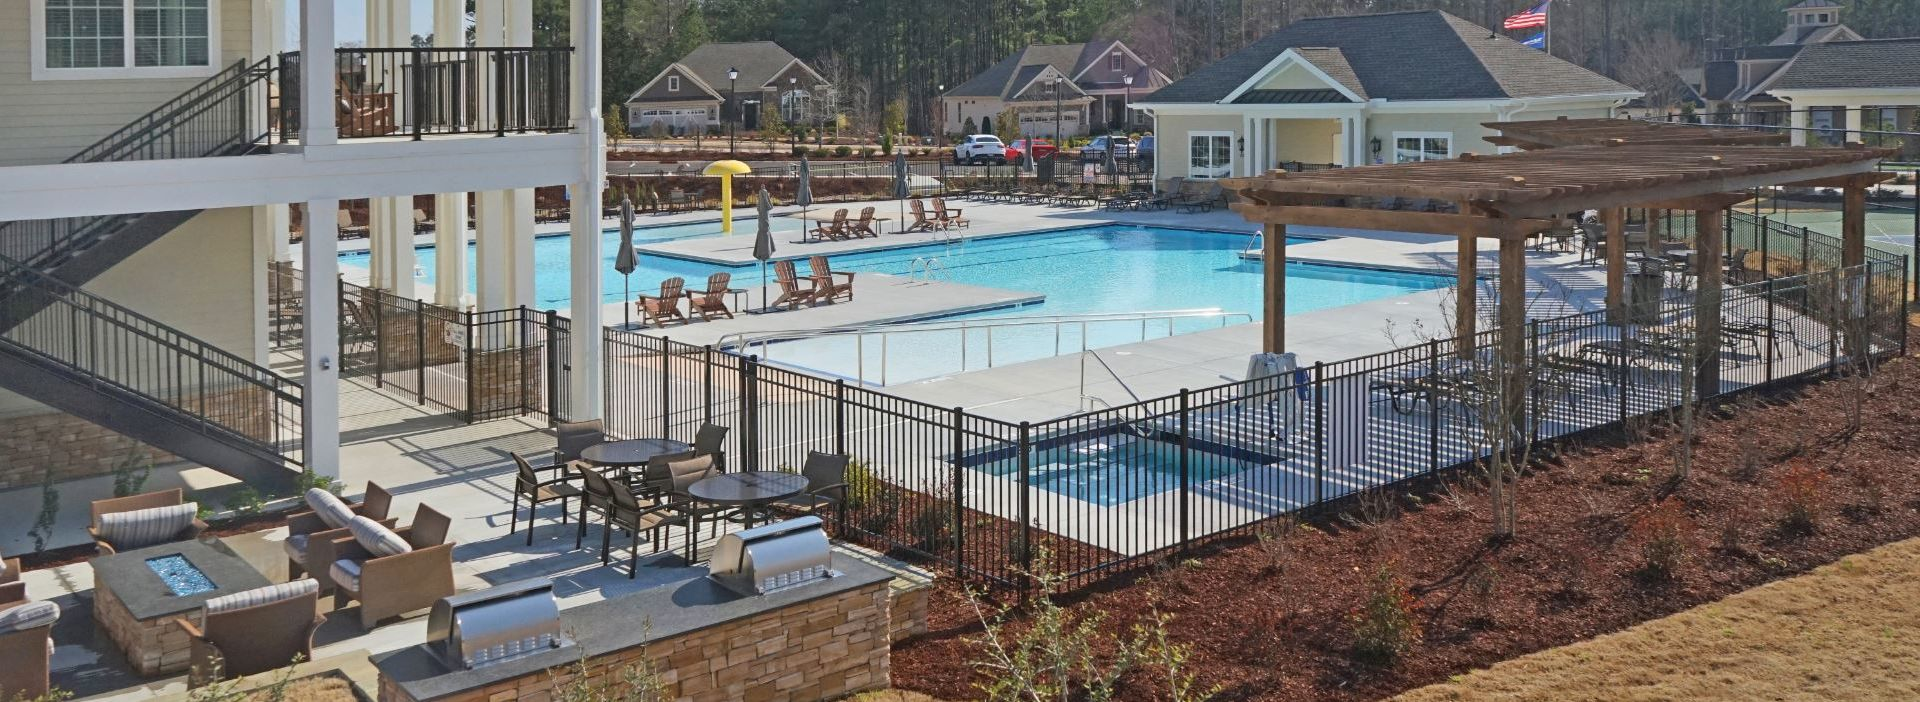 Featured Neighborhood – Regency at White Oak Creek